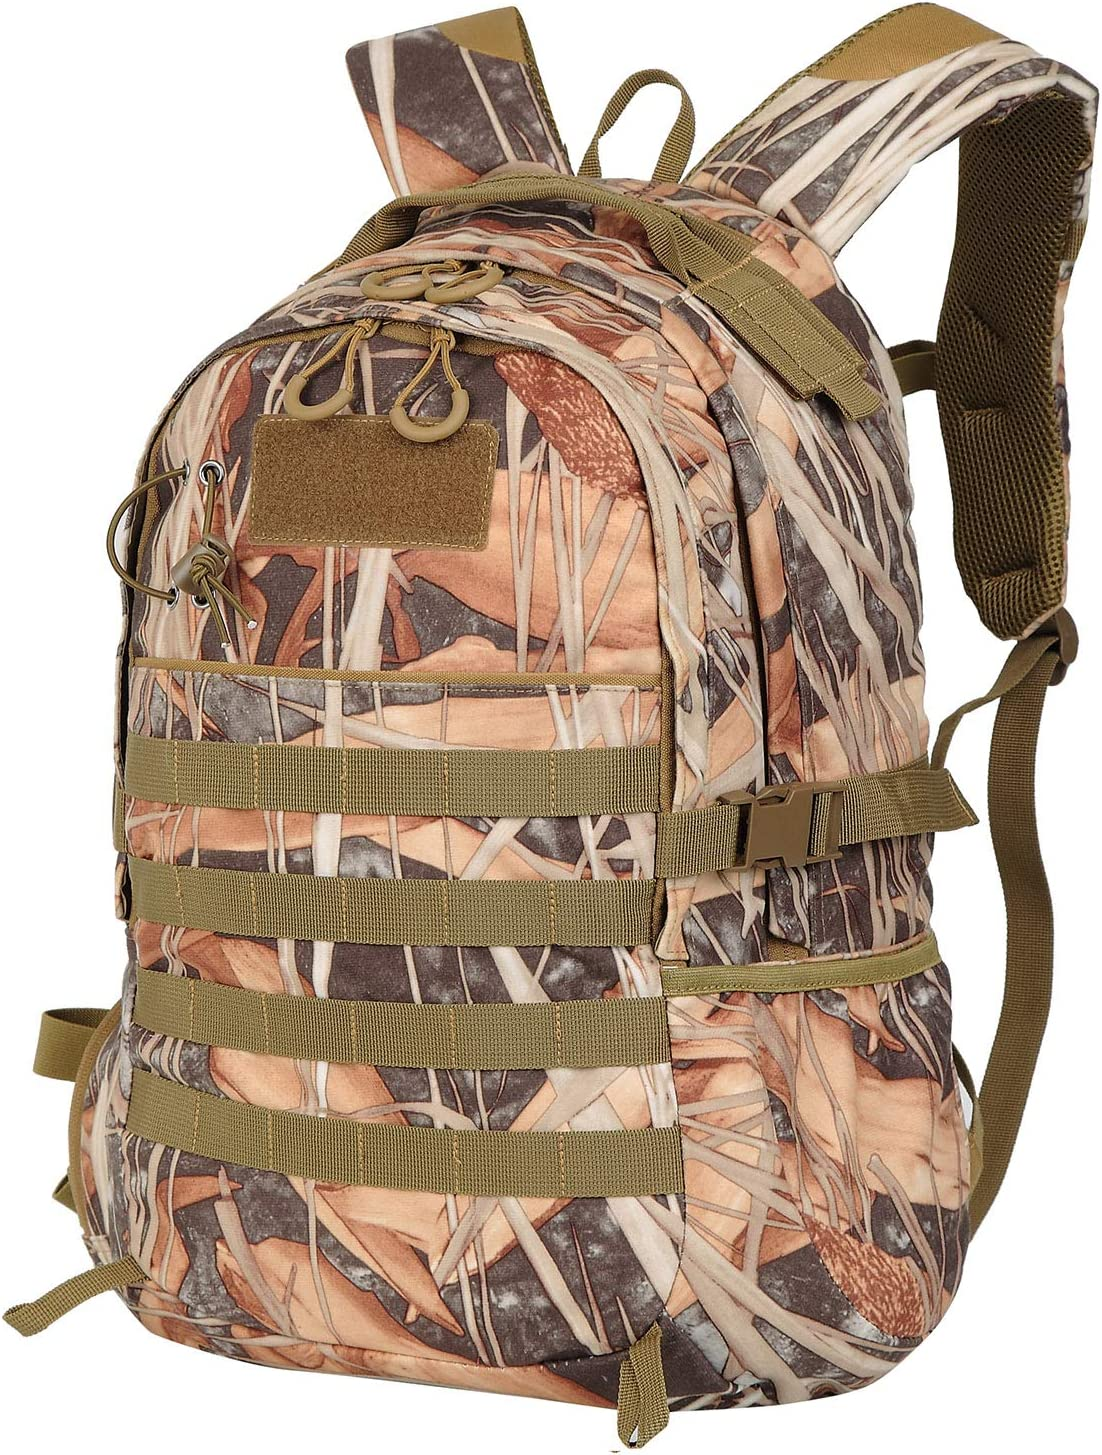 AUMTISC Sac /à Dos de Chasse Packs Outdoor Travel Bag Military Tactical Backpack for Travel Hiking Camping